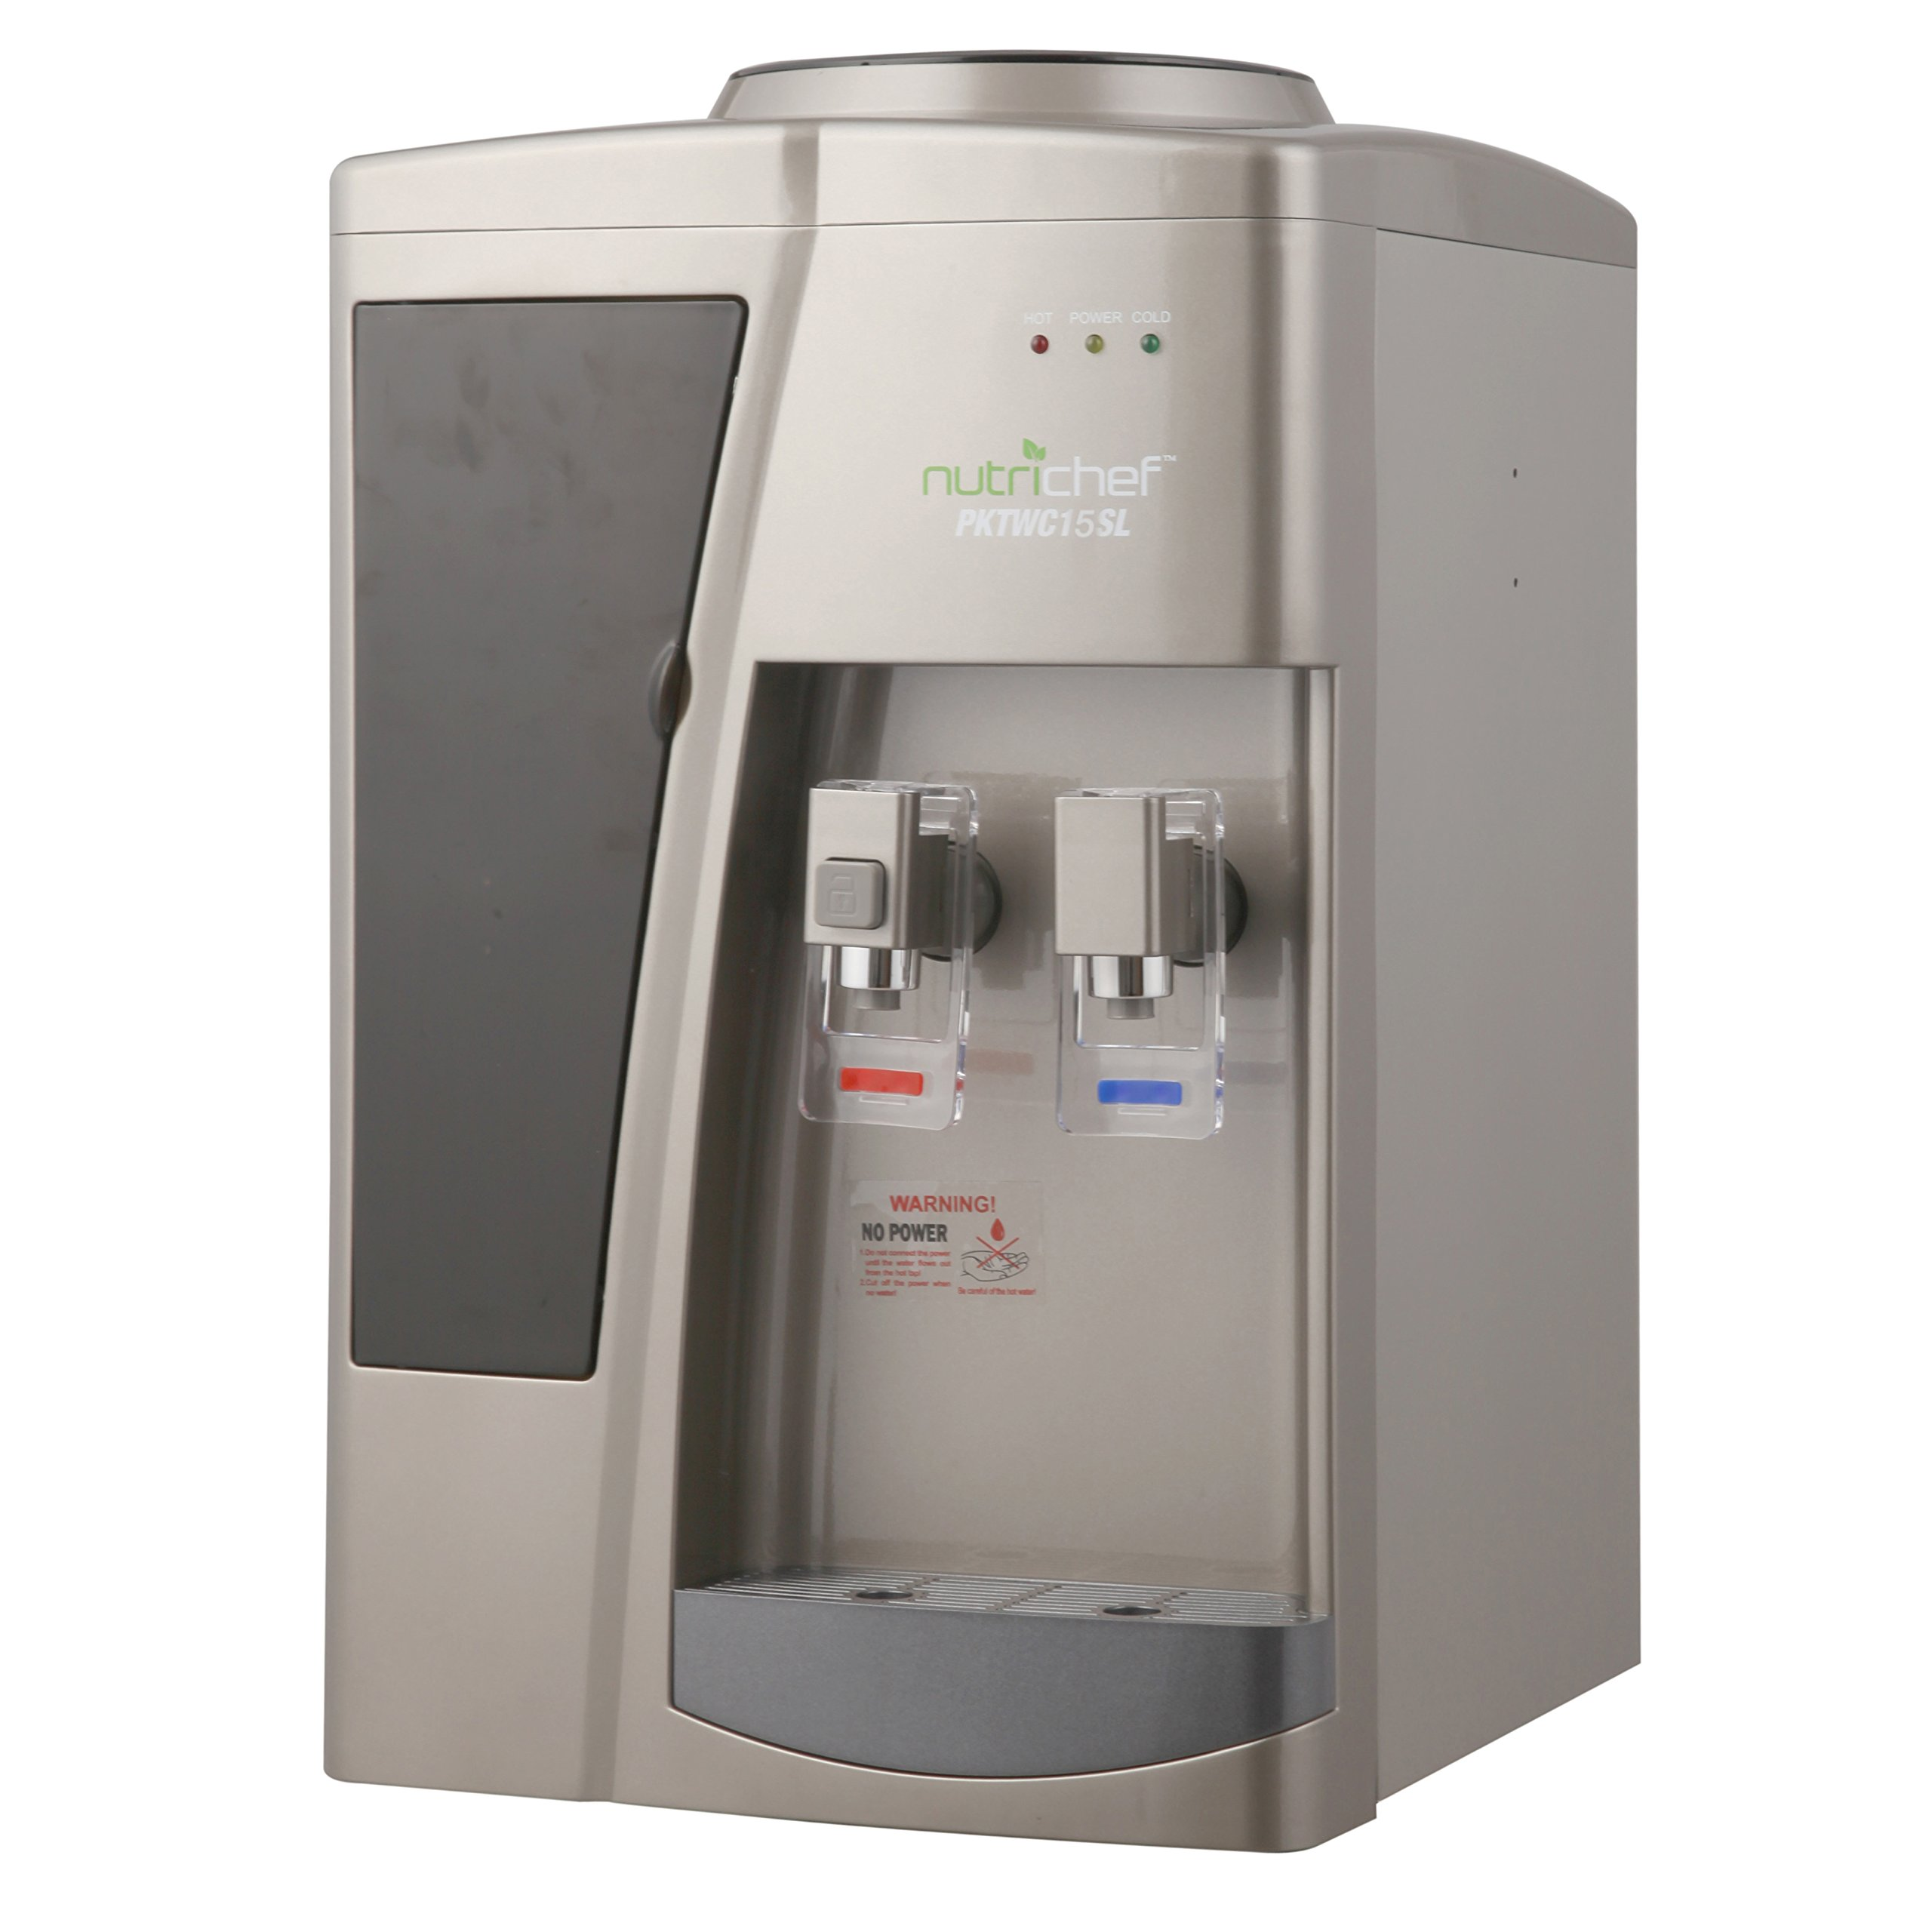 Nutrichef Countertop Compressor Water Cooler Dispenser - Hot & Cold Water, with Child Safety Lock. (PKTWC15SL)